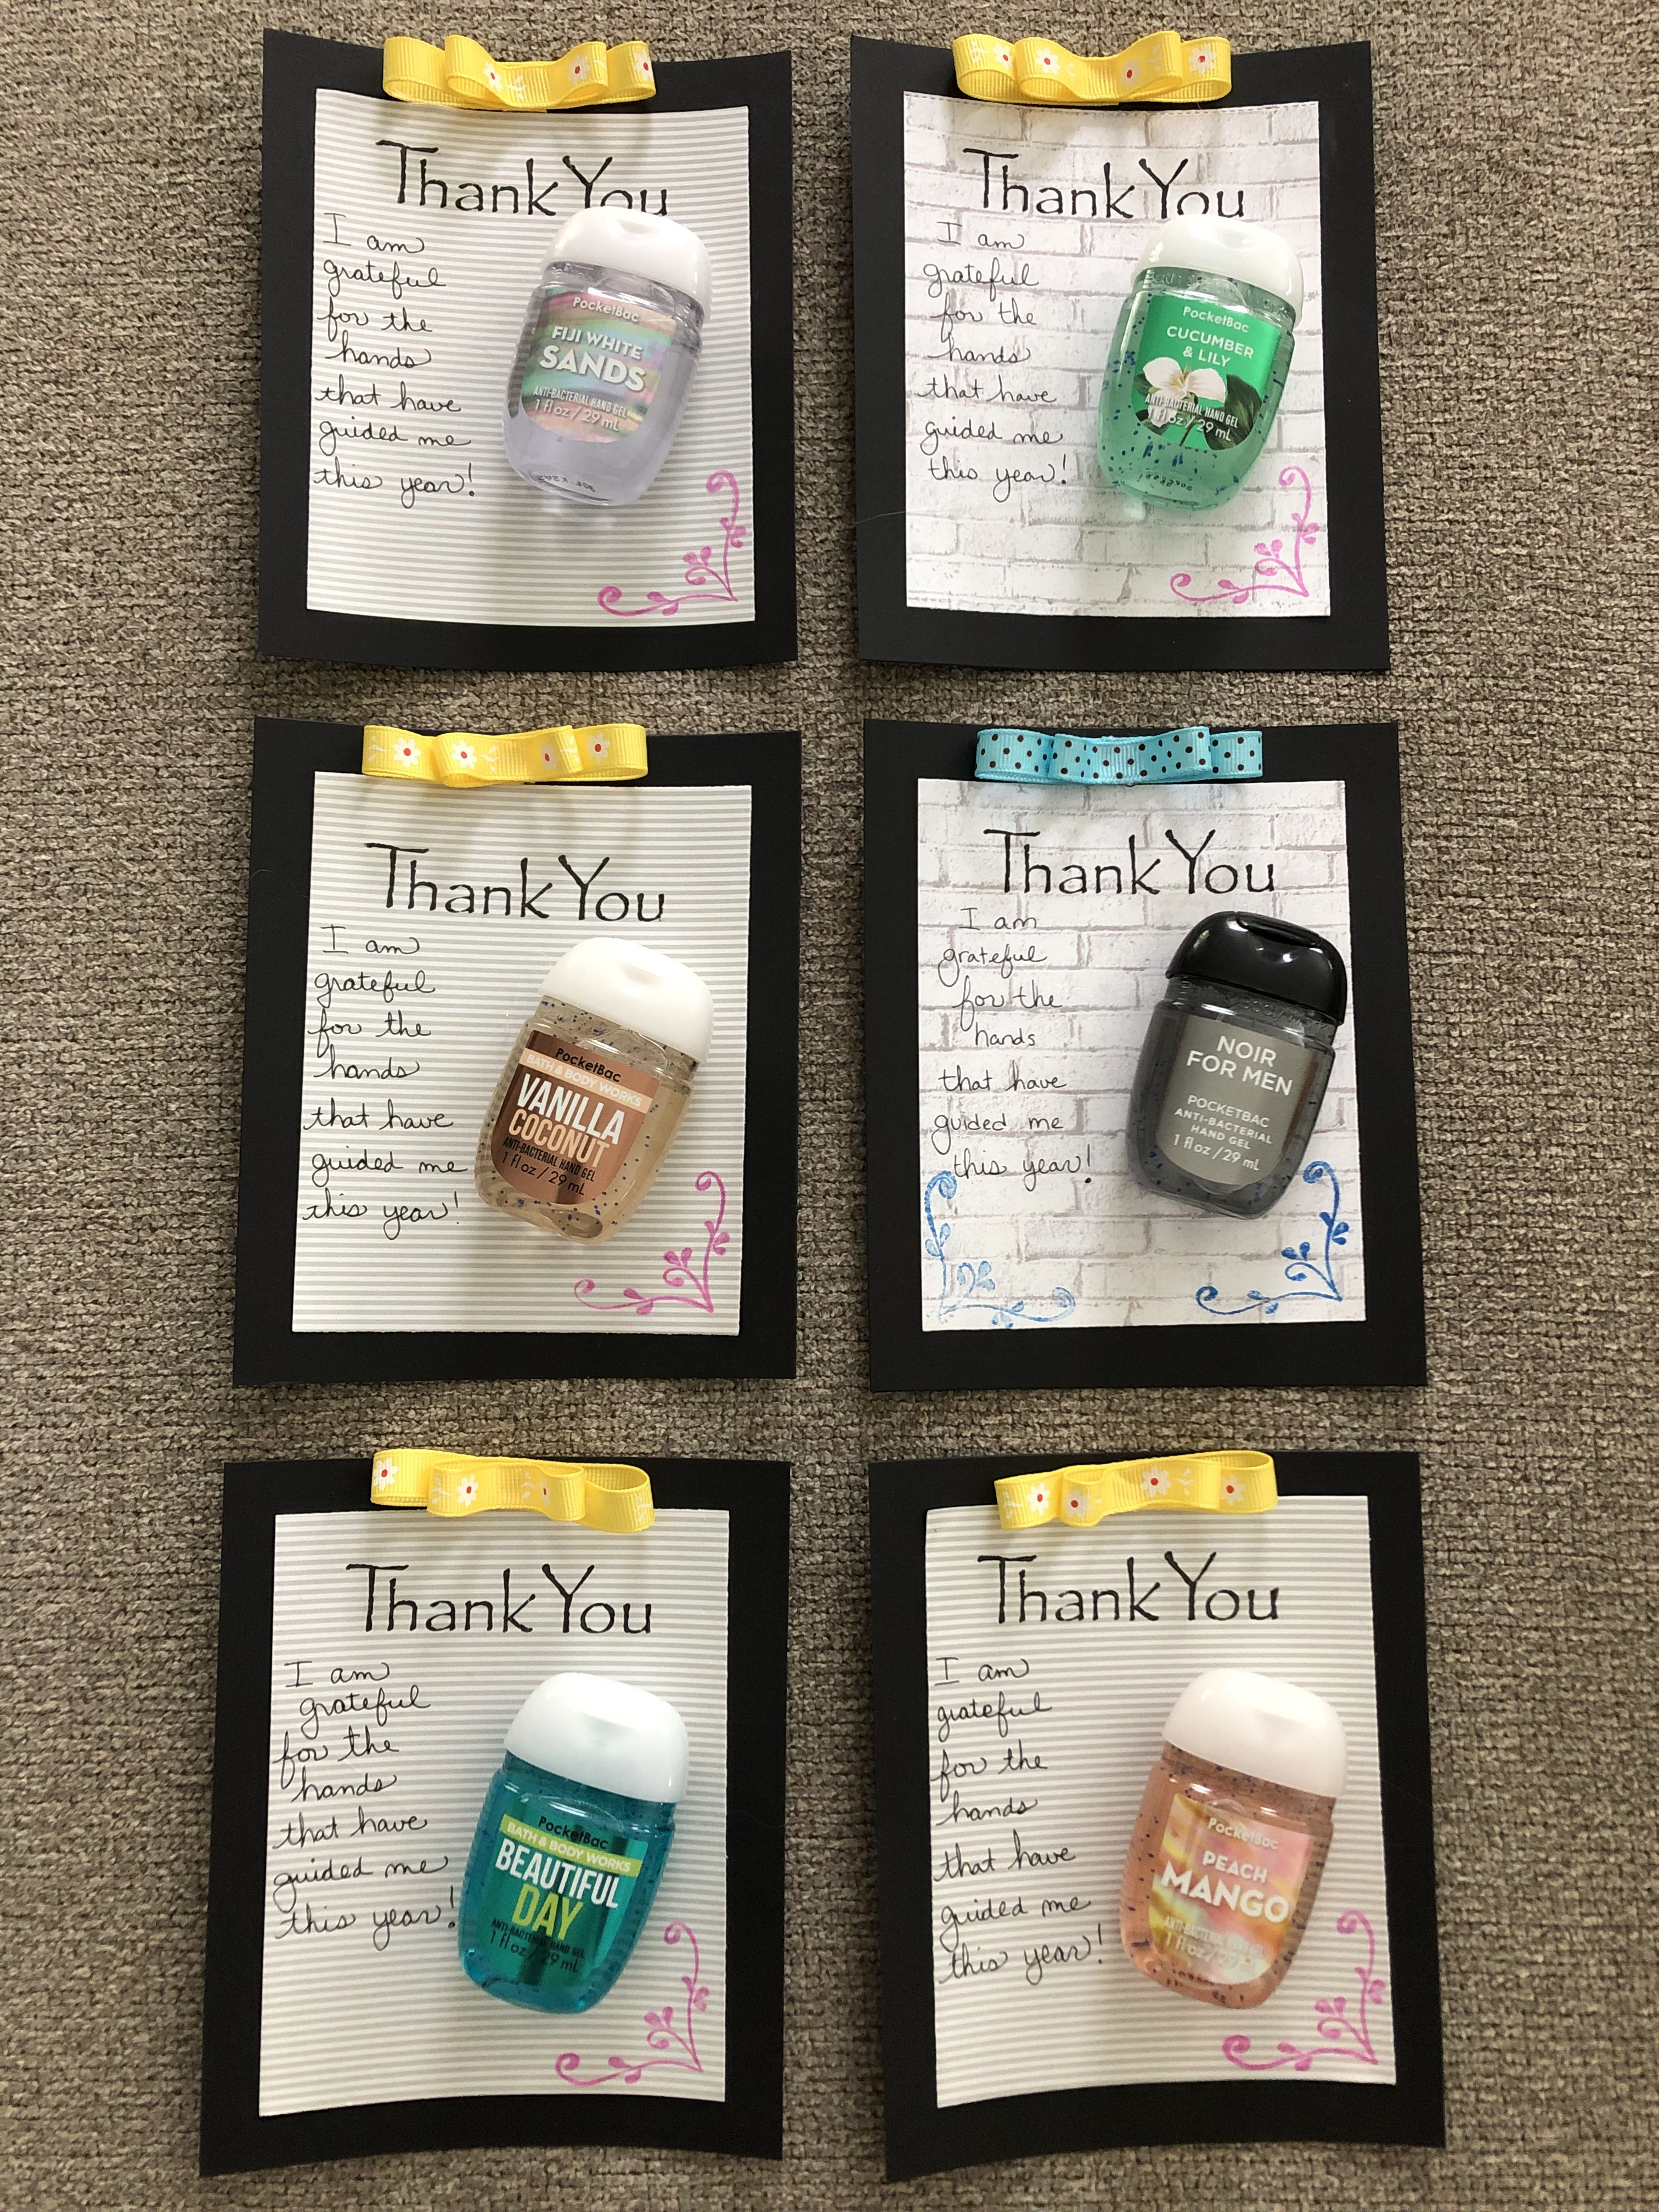 Lego Hand Sanitizer Teacher Appreciation Gifts Teacher Gift